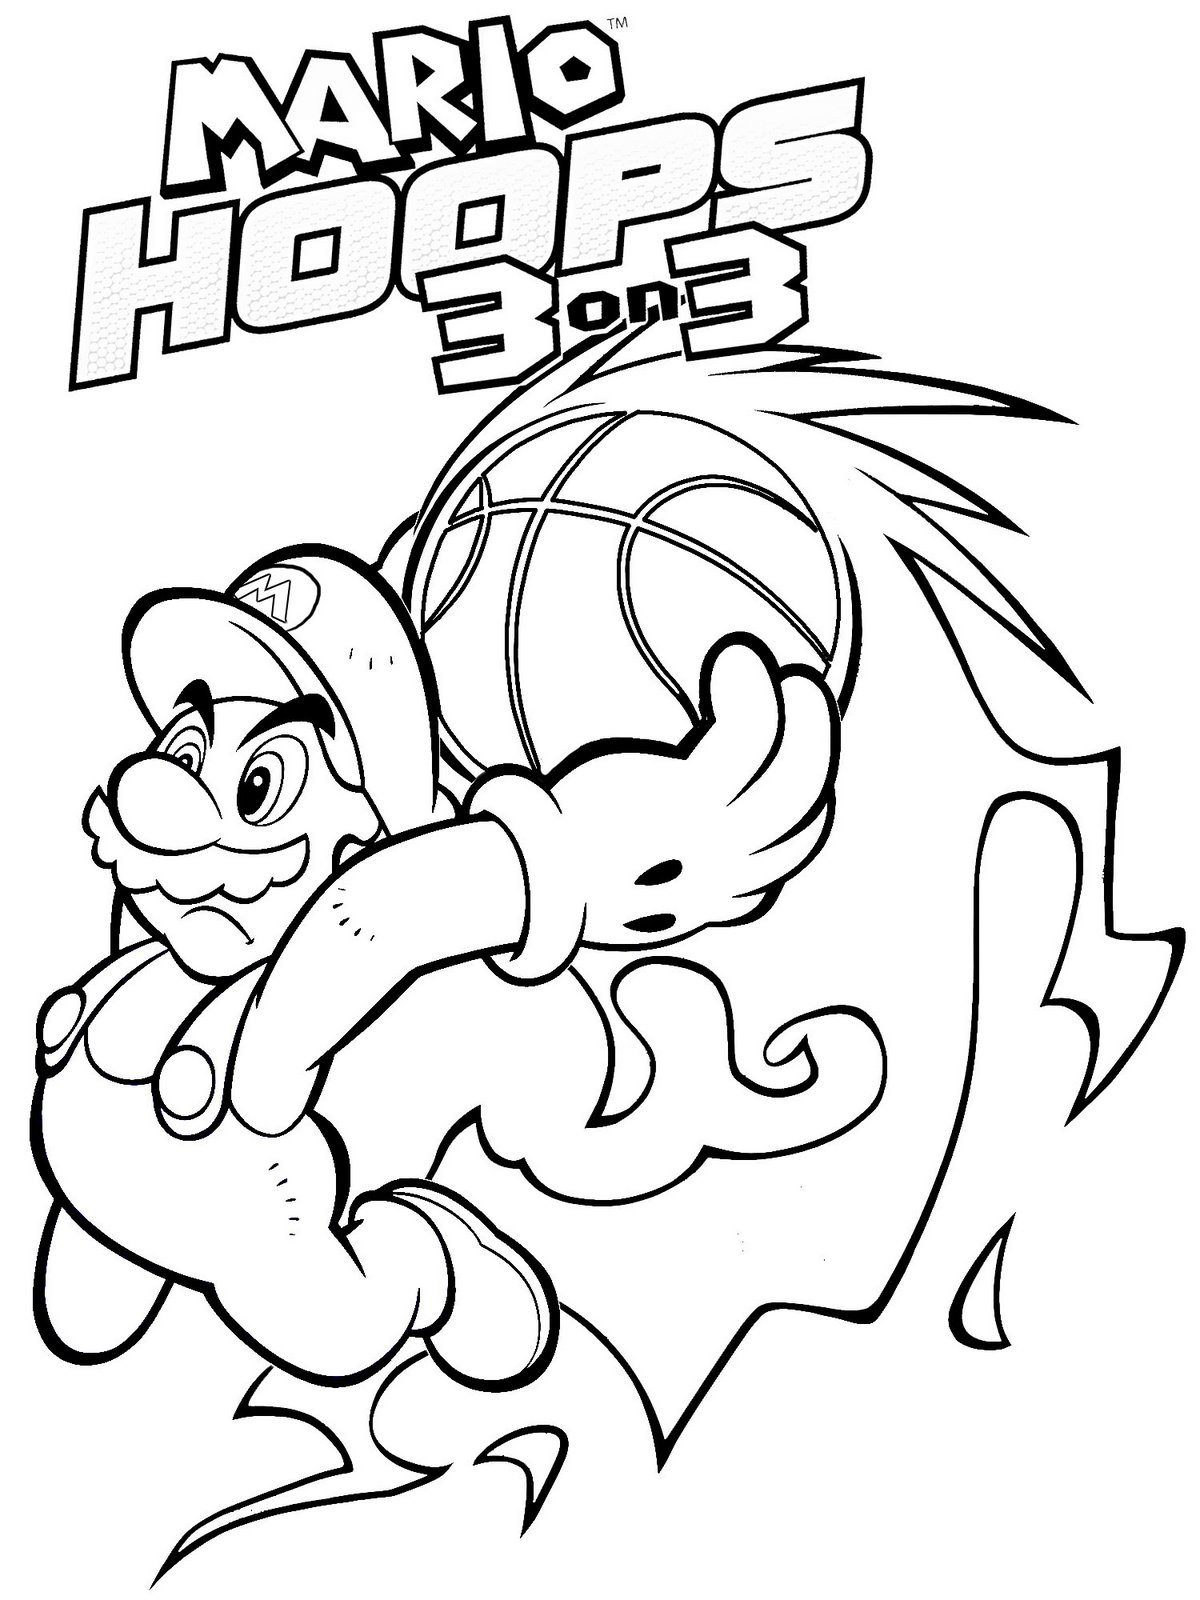 Coloring pages for kids mario bros - Printable Mario Coloring Pages